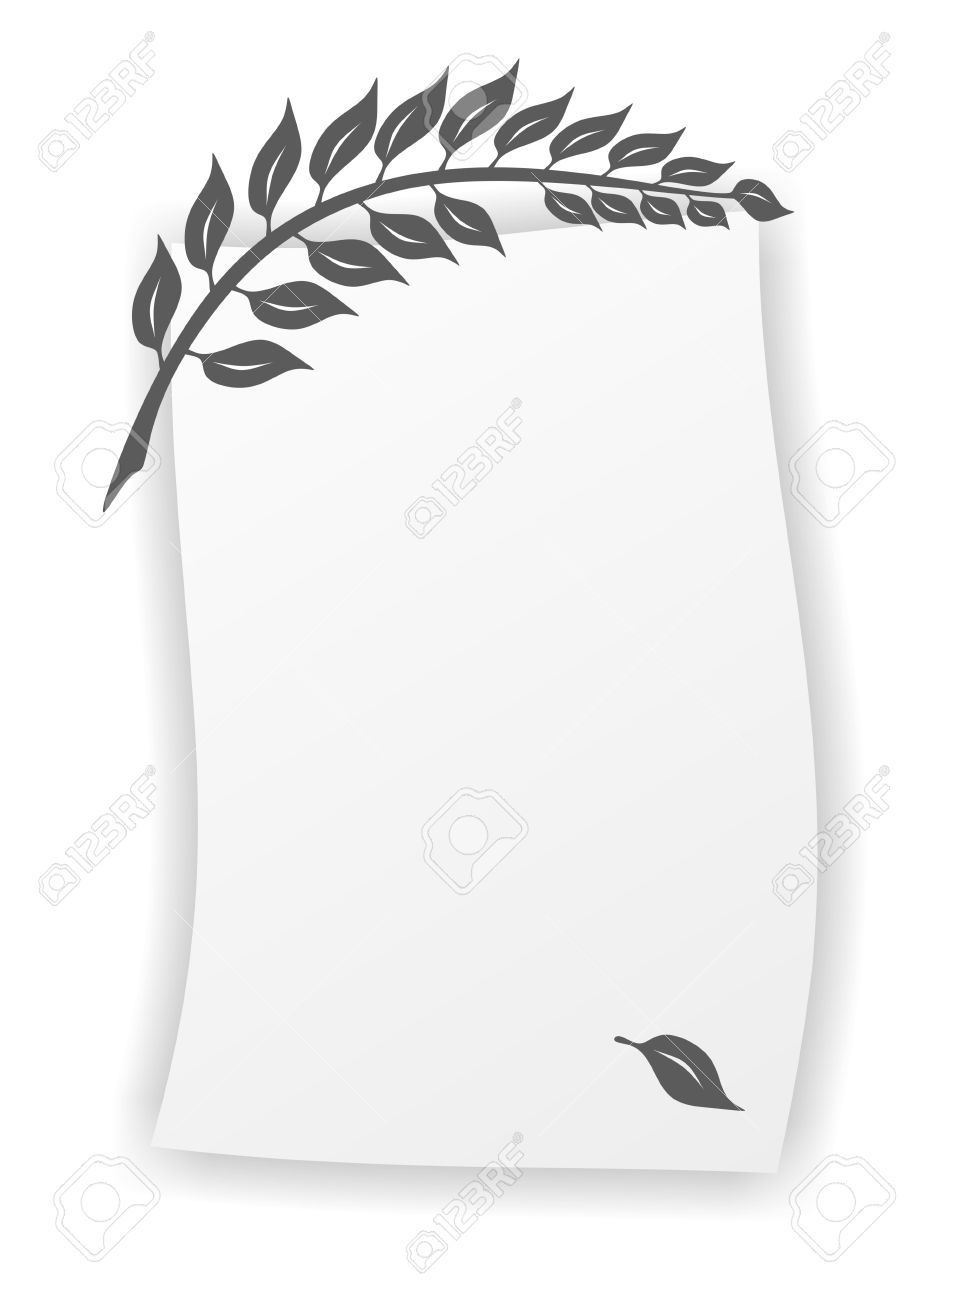 Simplified Twig As Template For A Death Notice Stock Photo, Picture ...